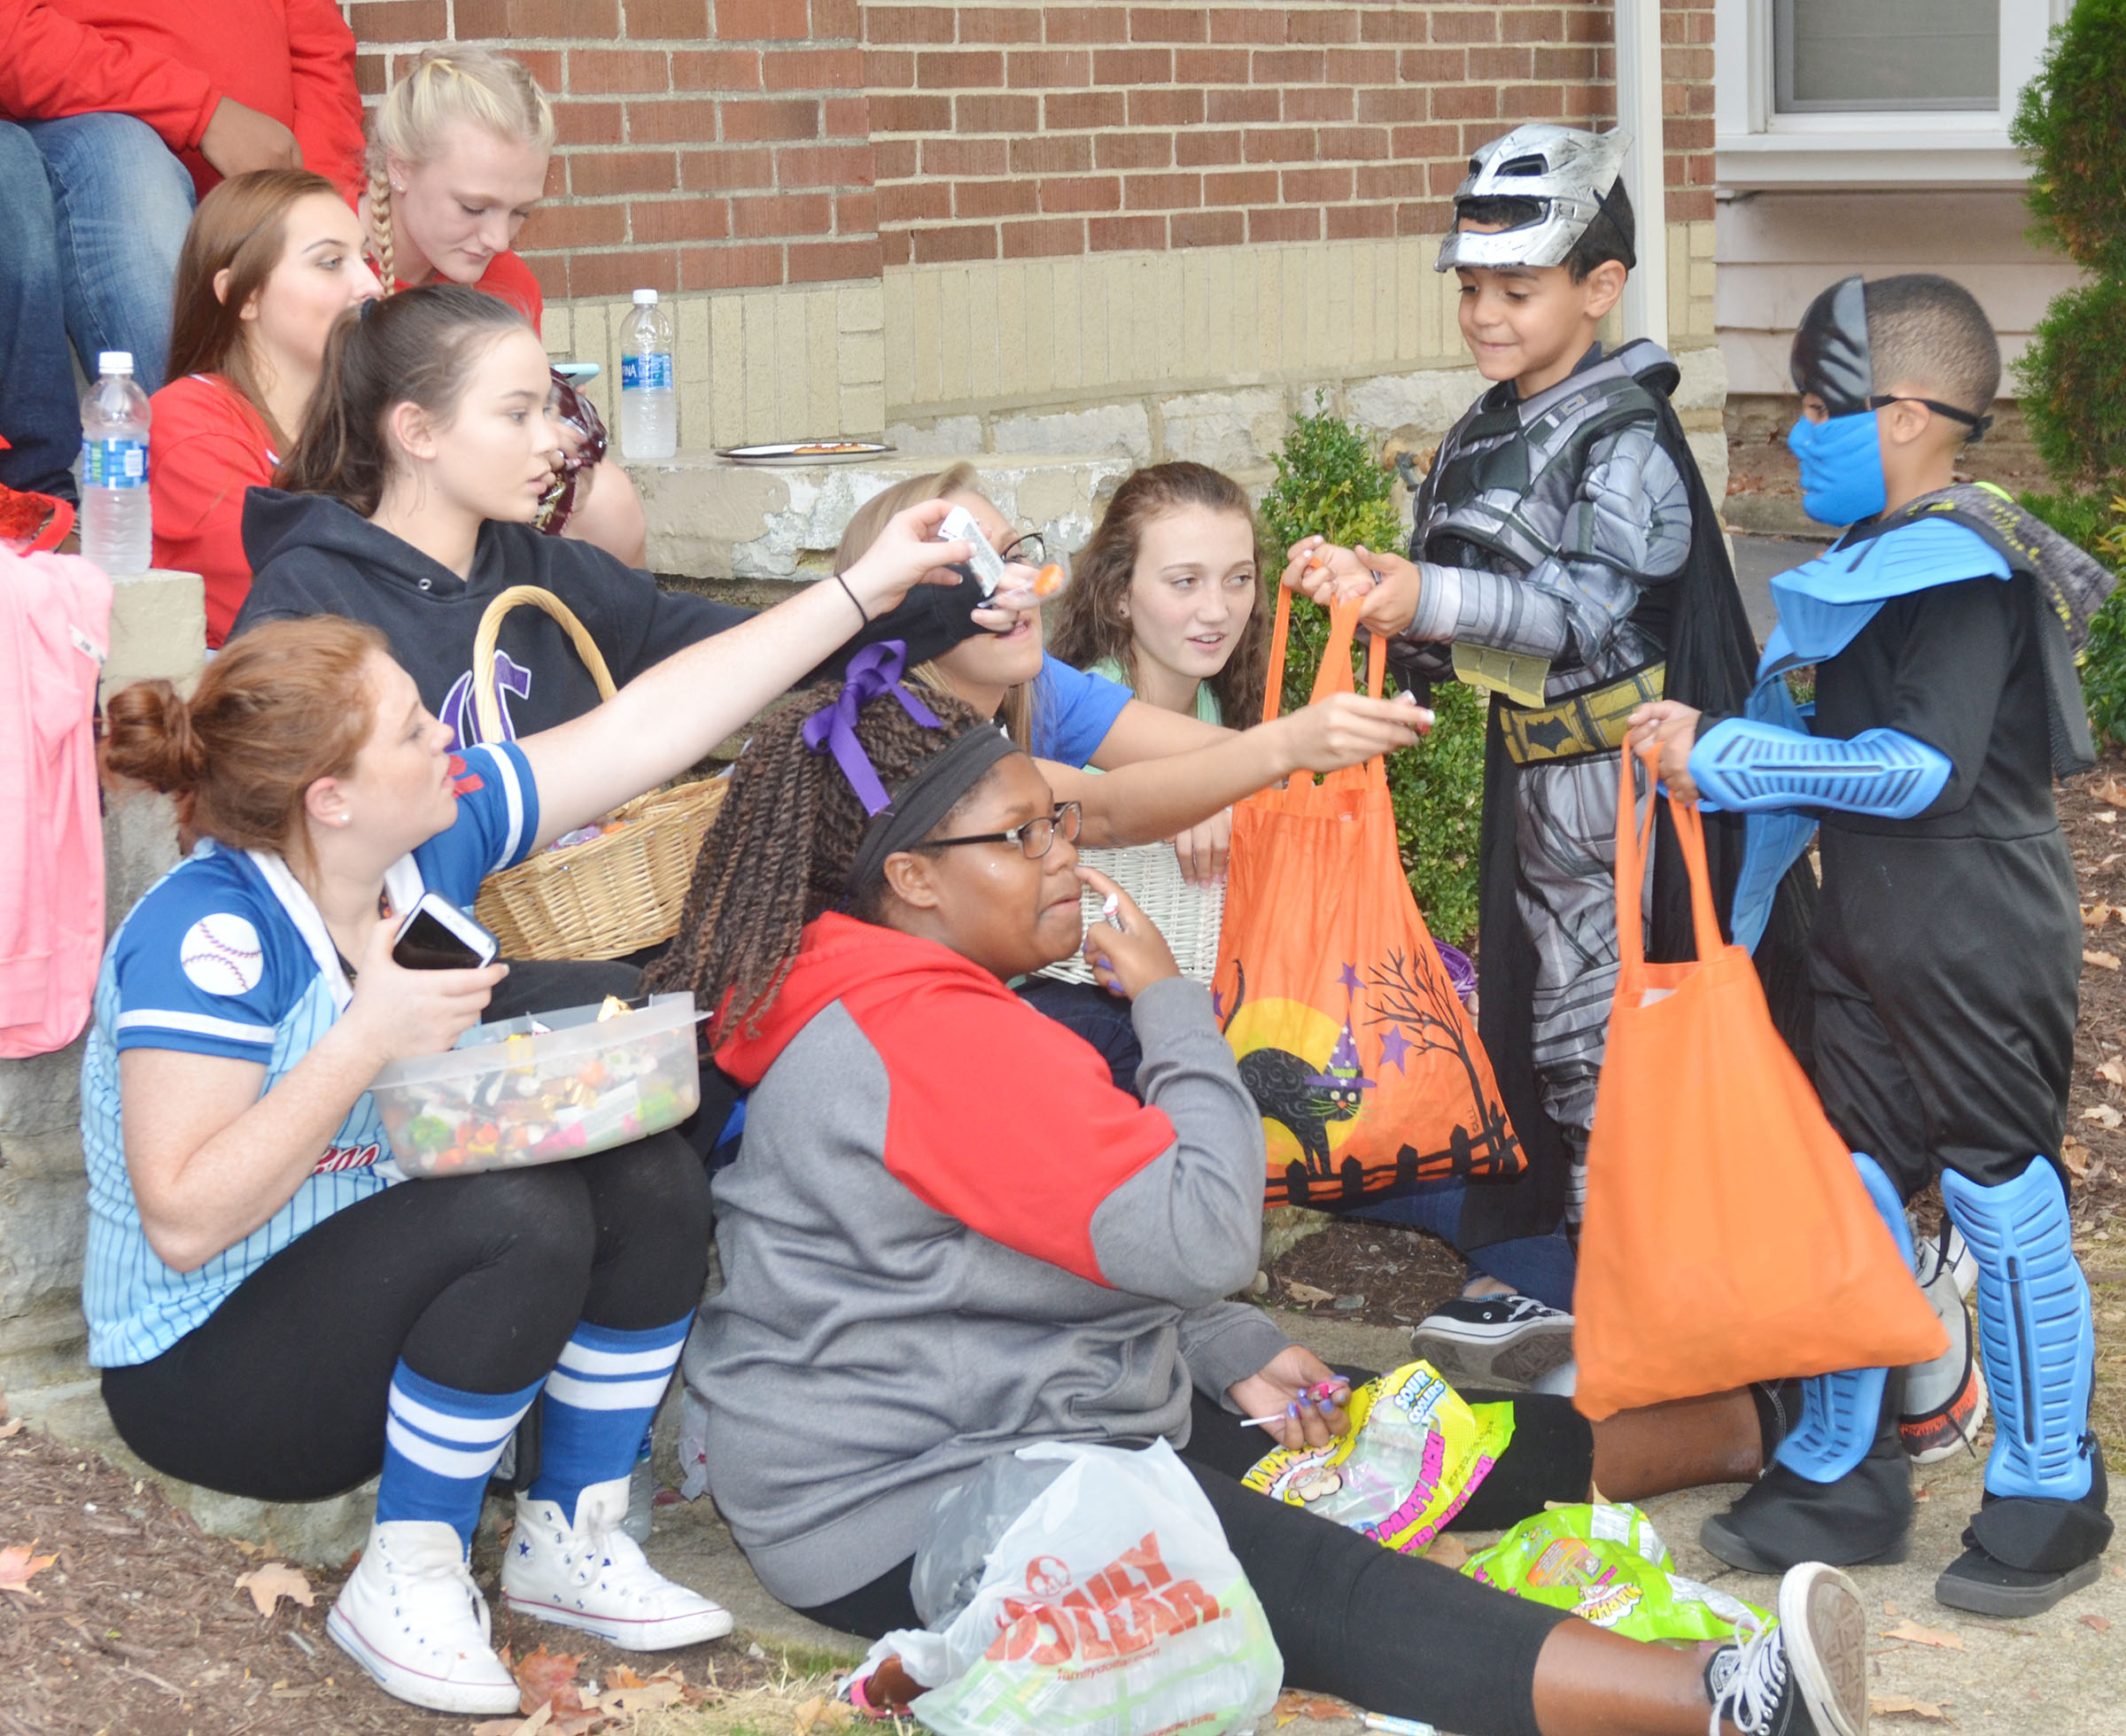 CHS KYA members pass out candy to trick or treaters.